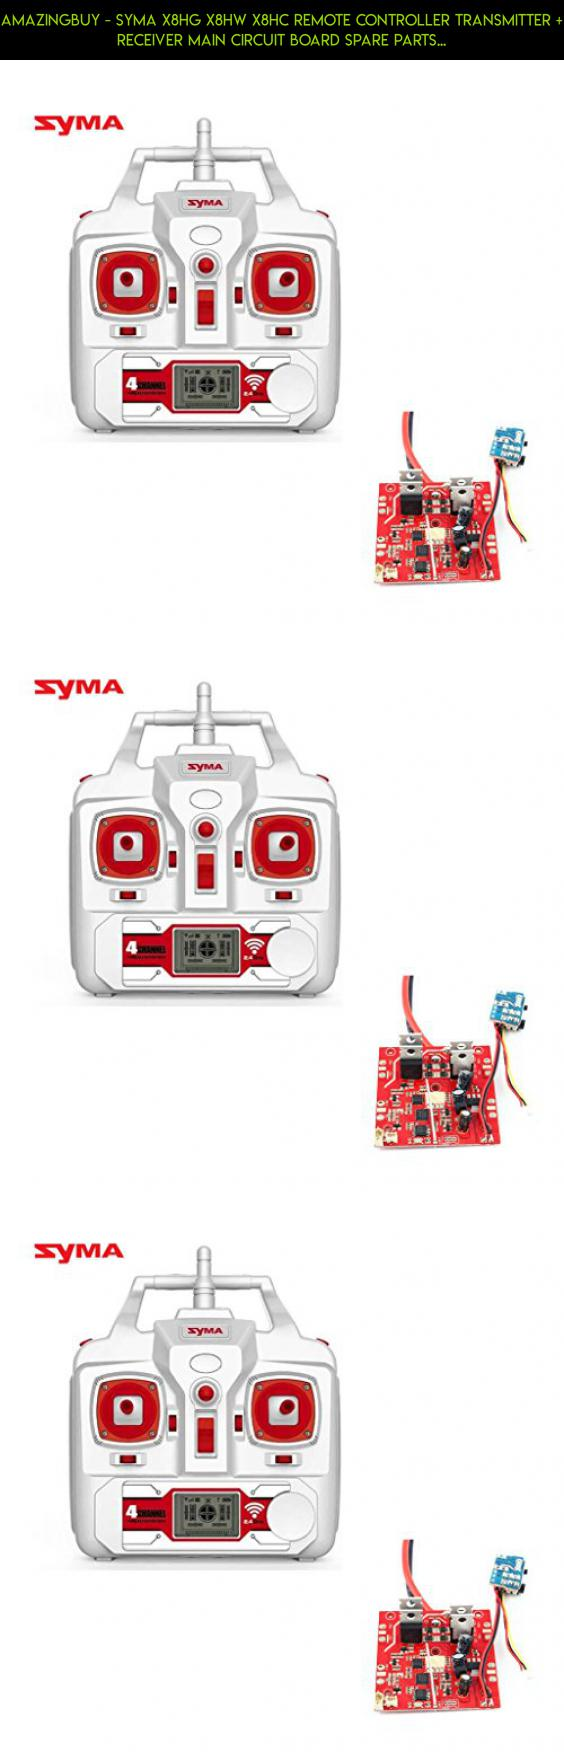 Amazingbuy Syma X8hg X8hw X8hc Remote Controller Transmitter Control Helicopter Circuit Receiver Main Board Spare Parts Replacements Fpv Racing Technology